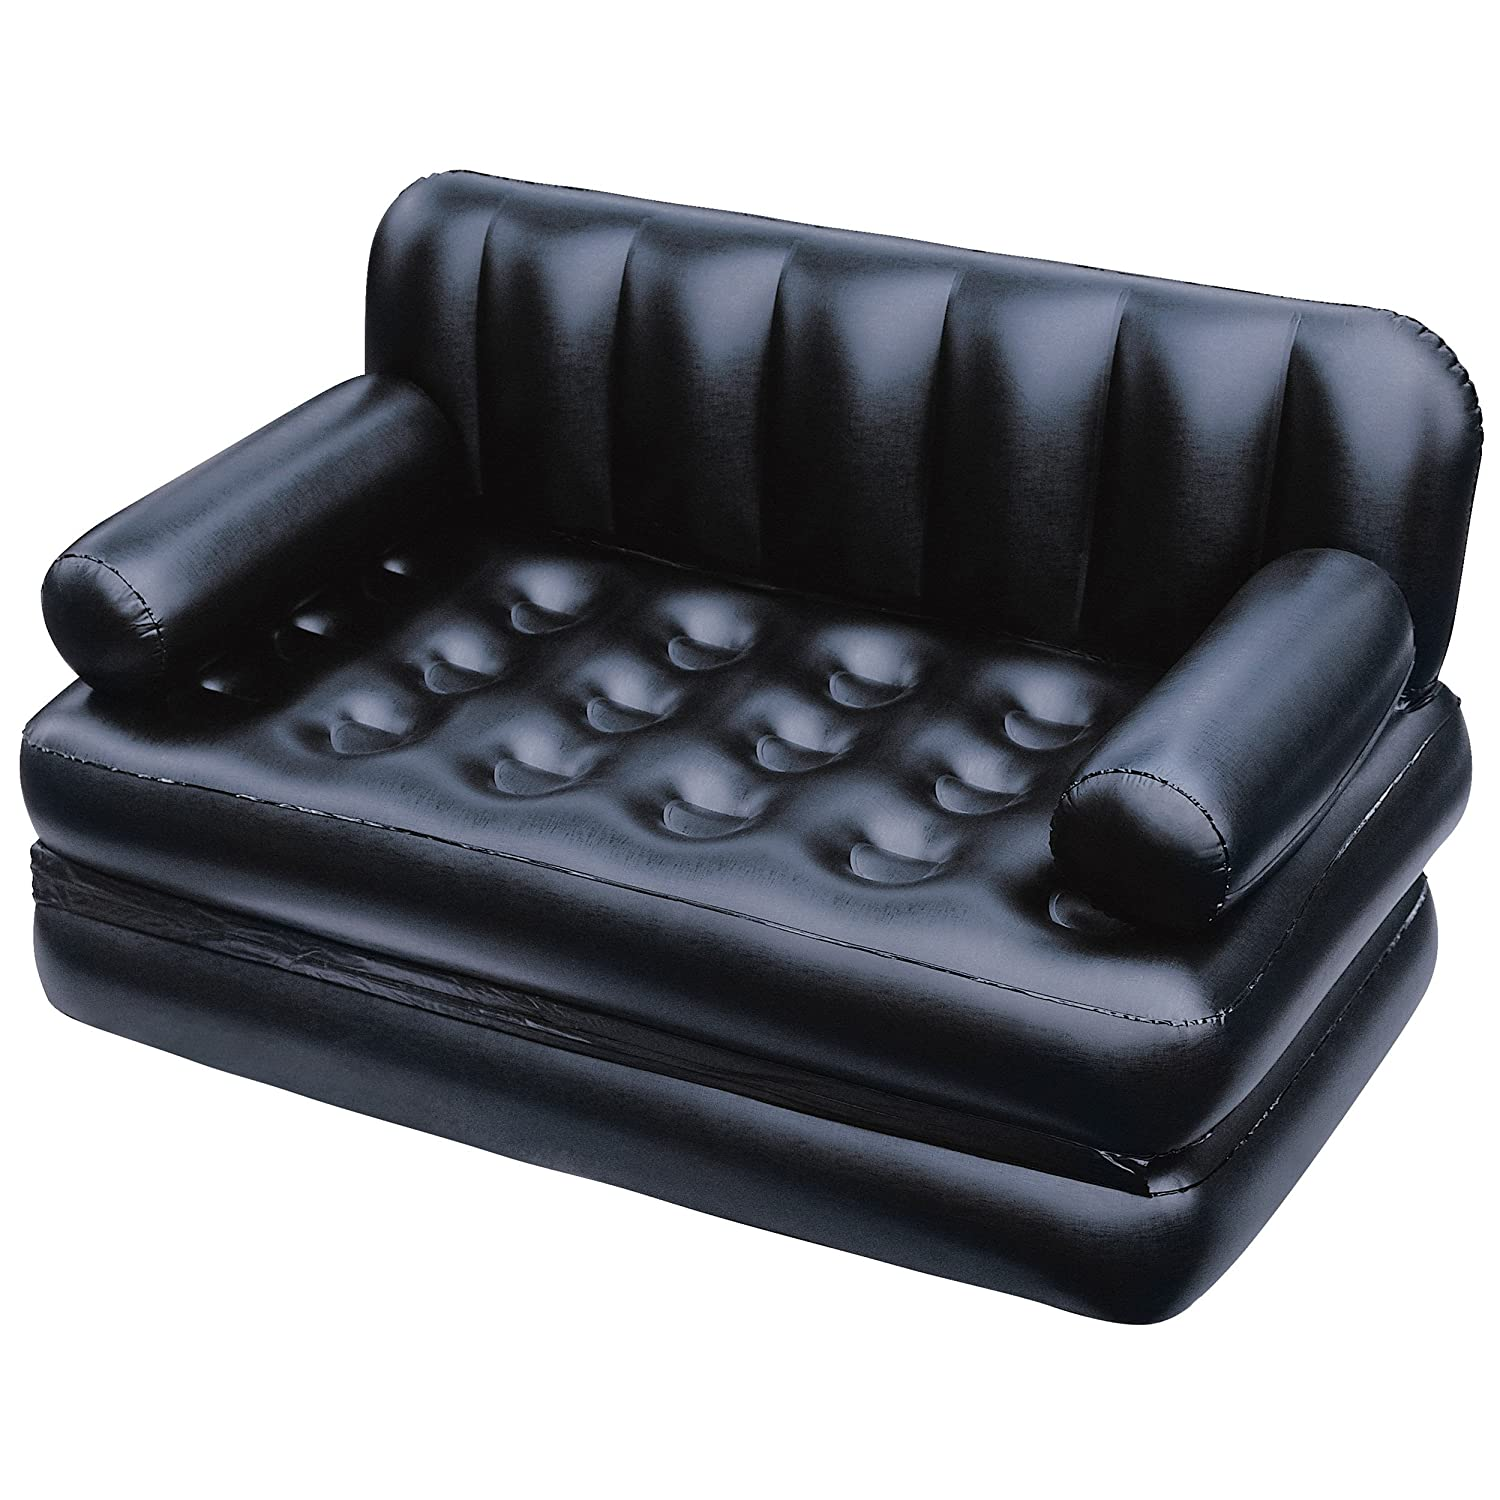 5 in 1 Sofa Air Bed